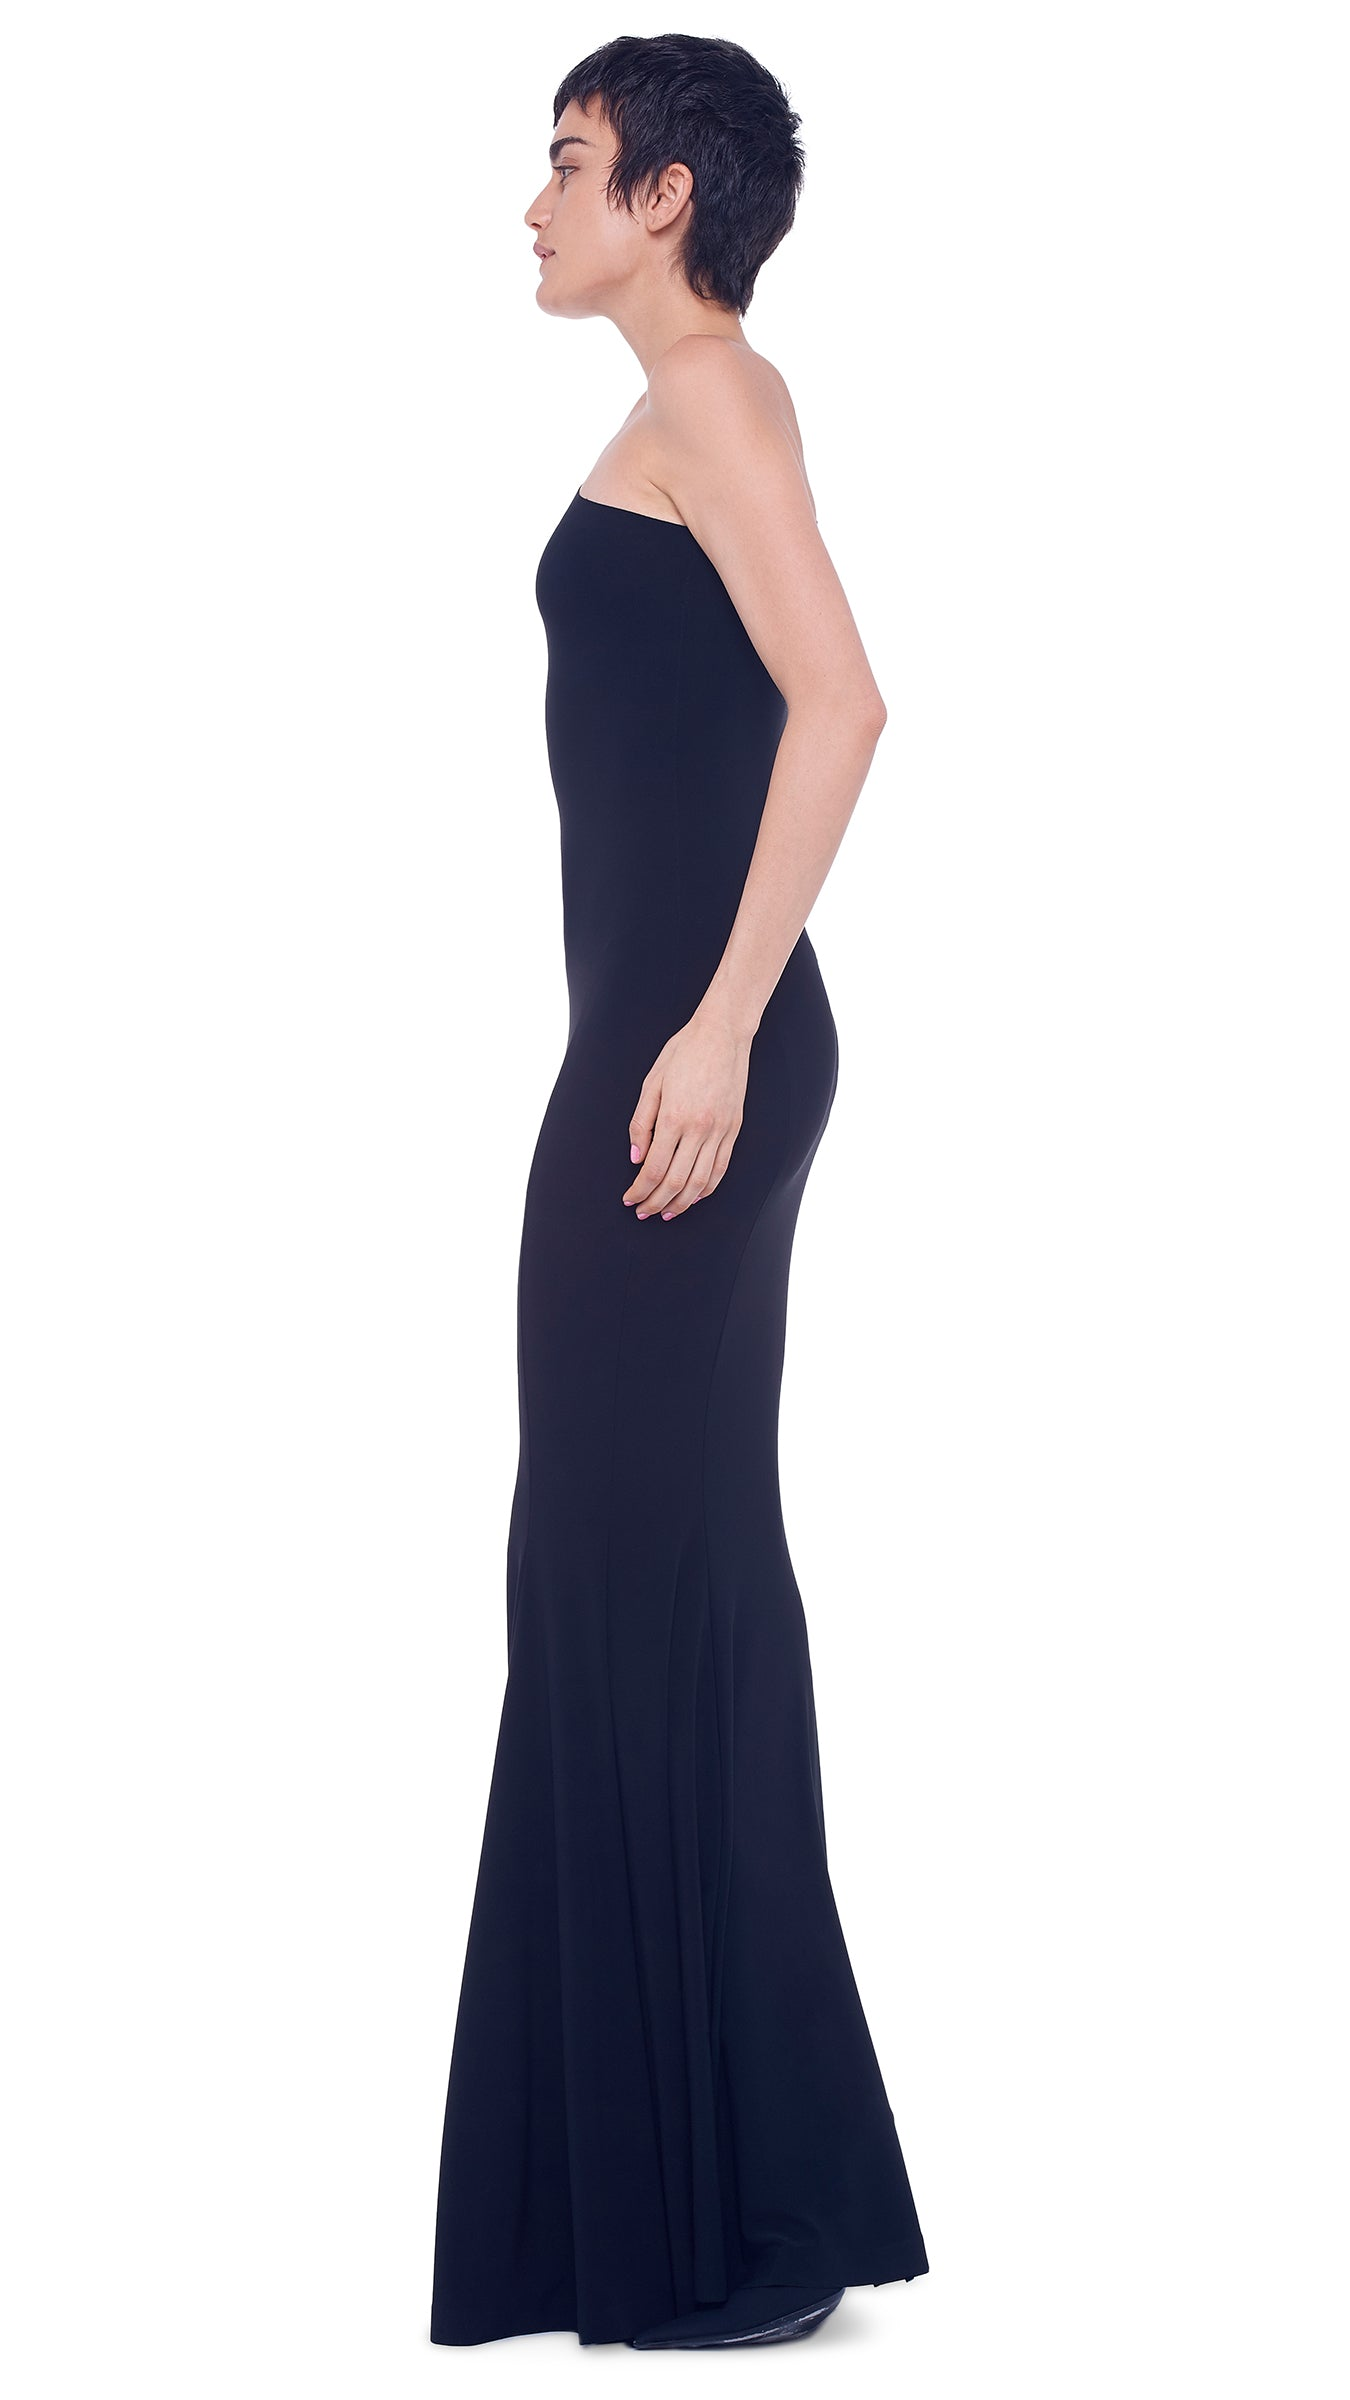 ONE SHOULDER FISHTAIL GOWN